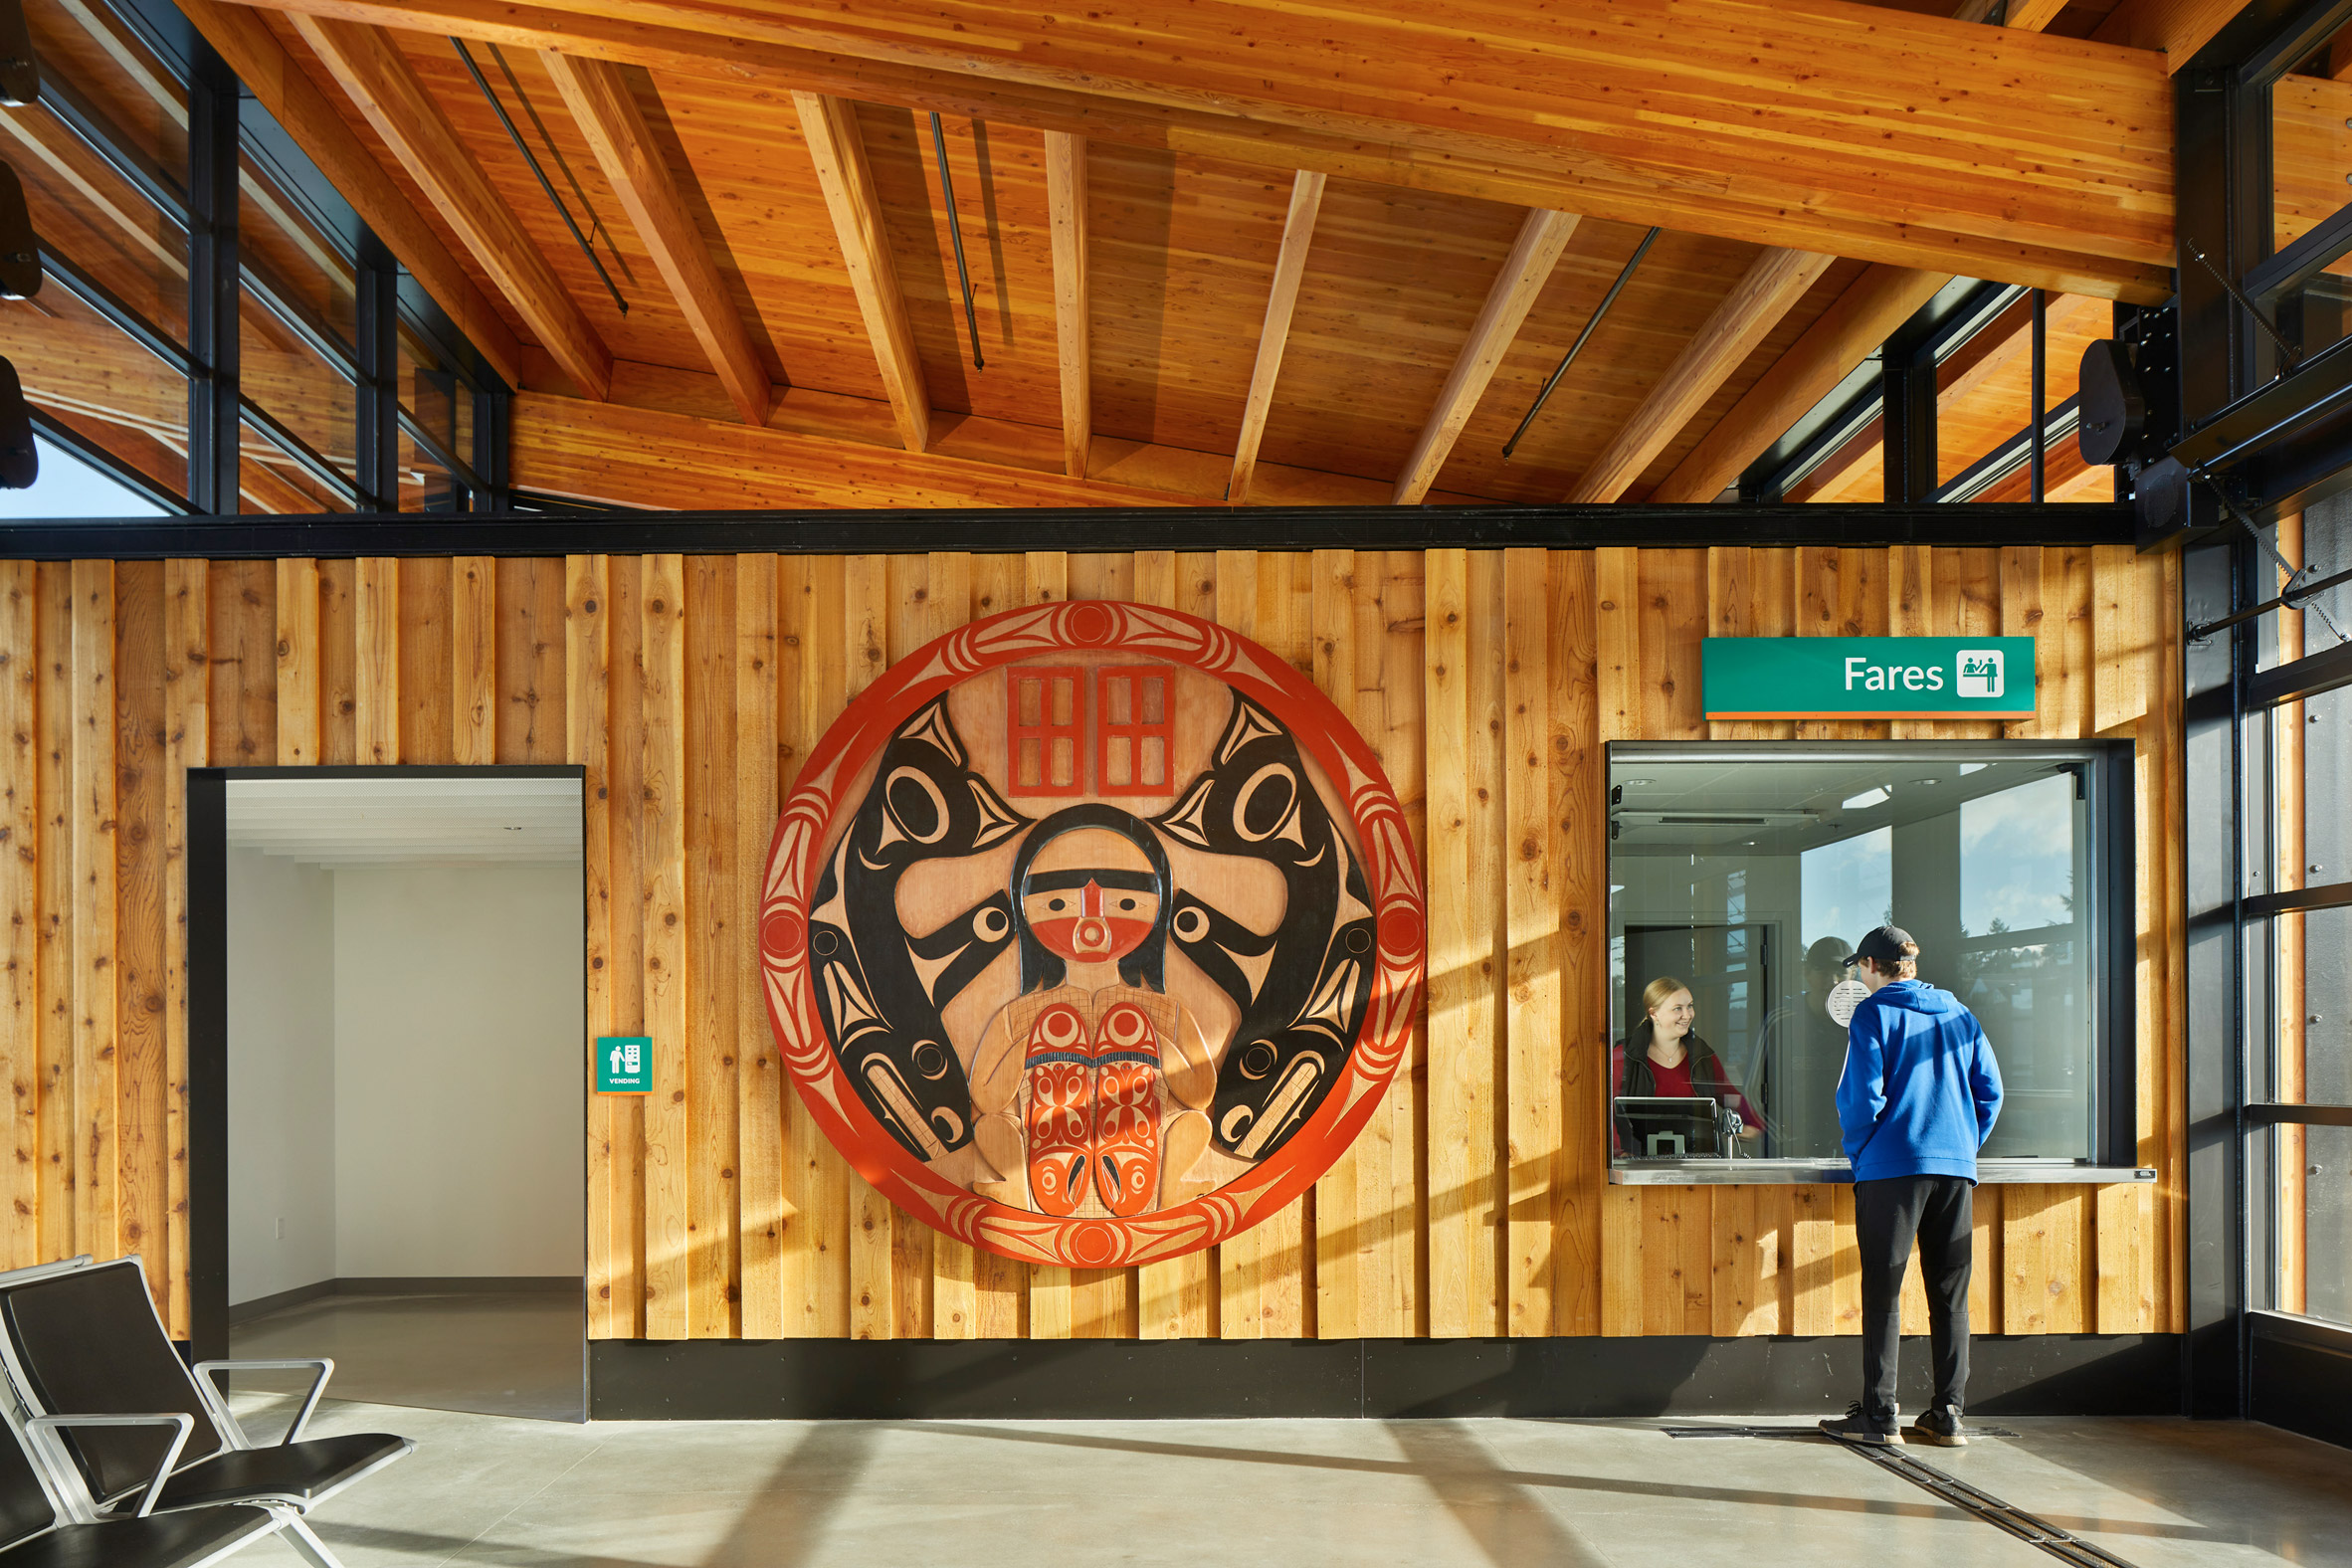 Spindle whorl by Grobin in Mukilteo Multimodal Ferry Terminal